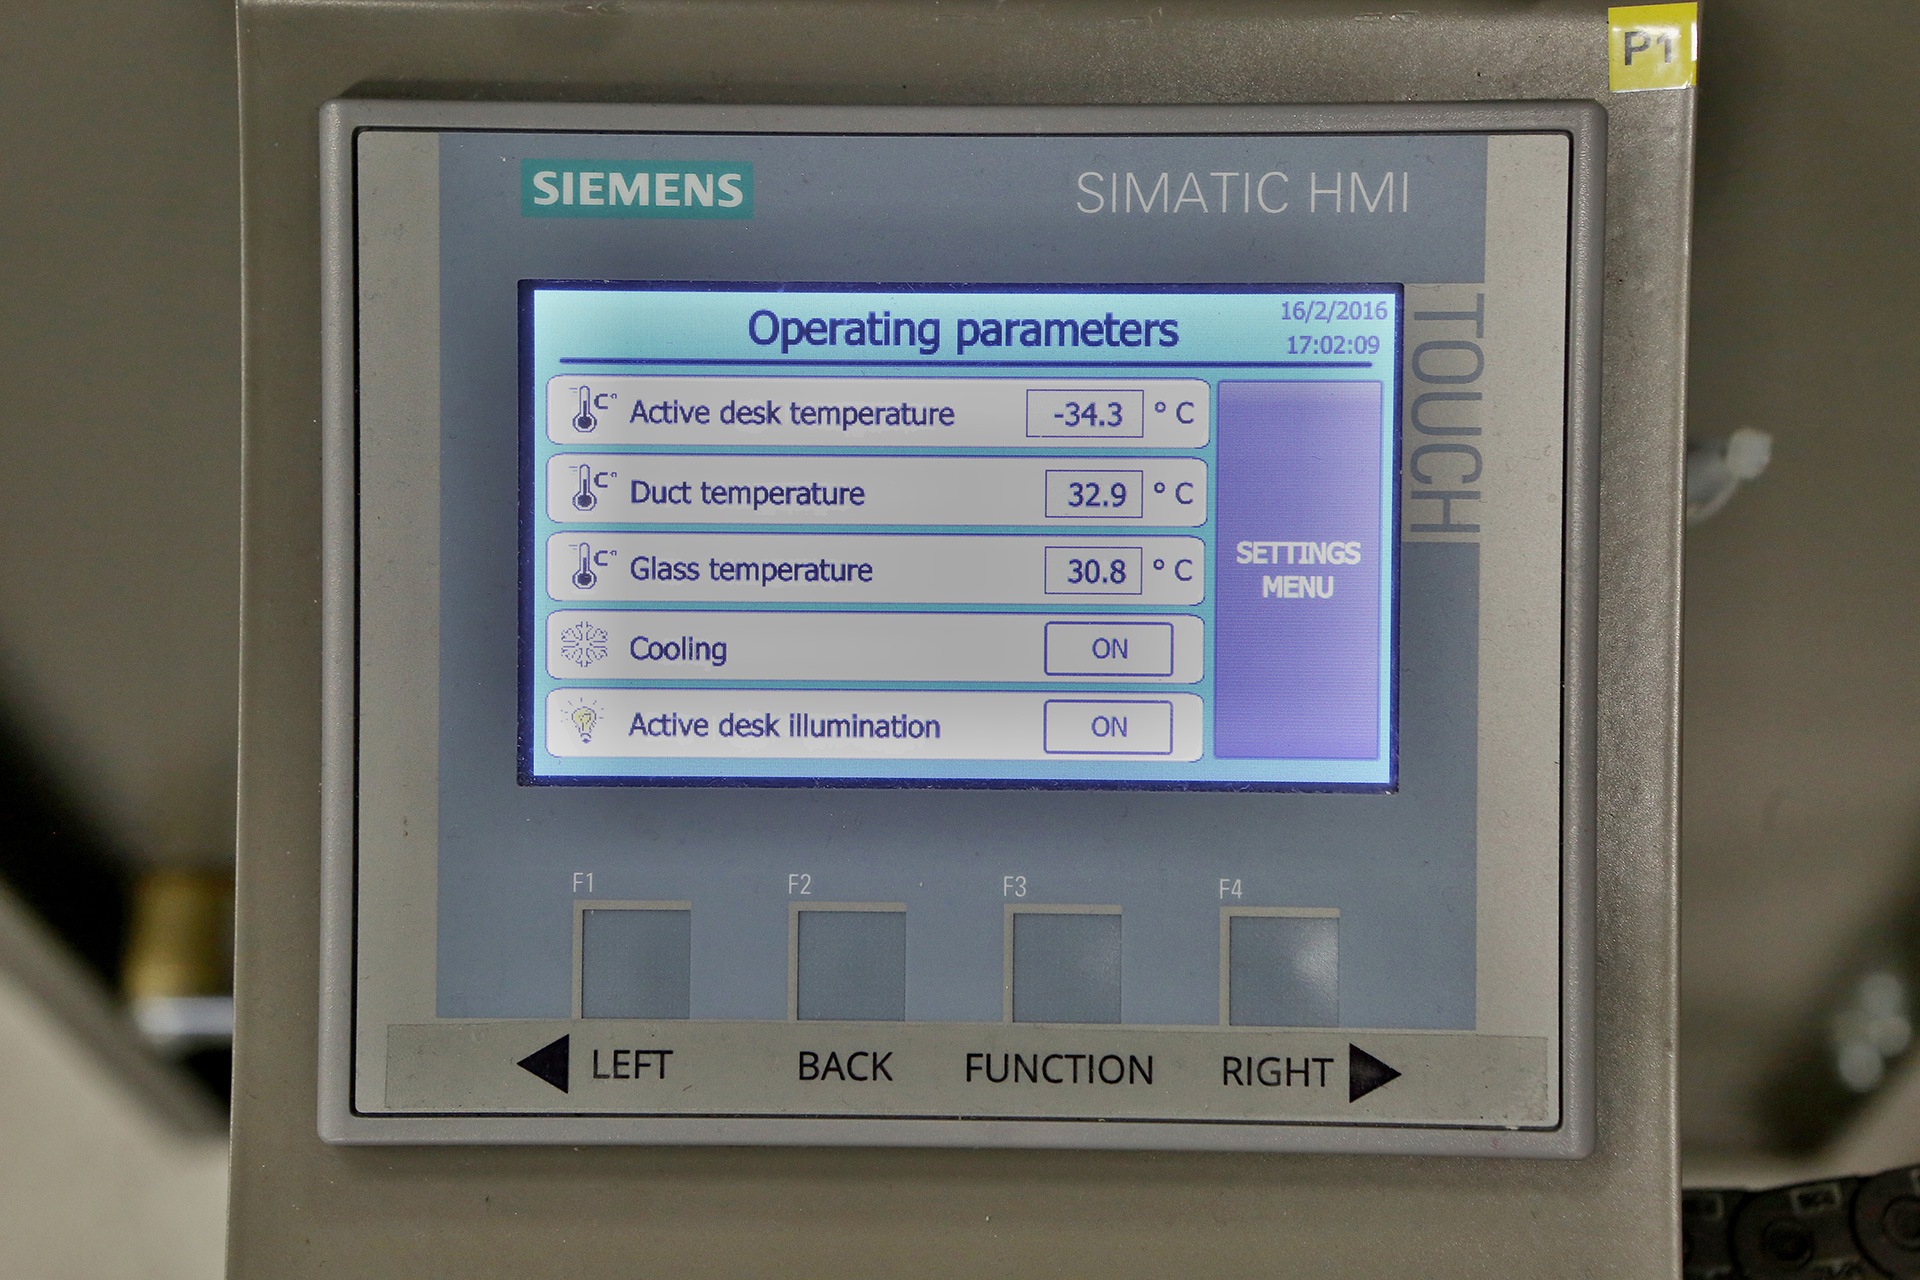 Control pannel is equipped with optimized software for smooth control of the Nuledo Unica cloud chamber.